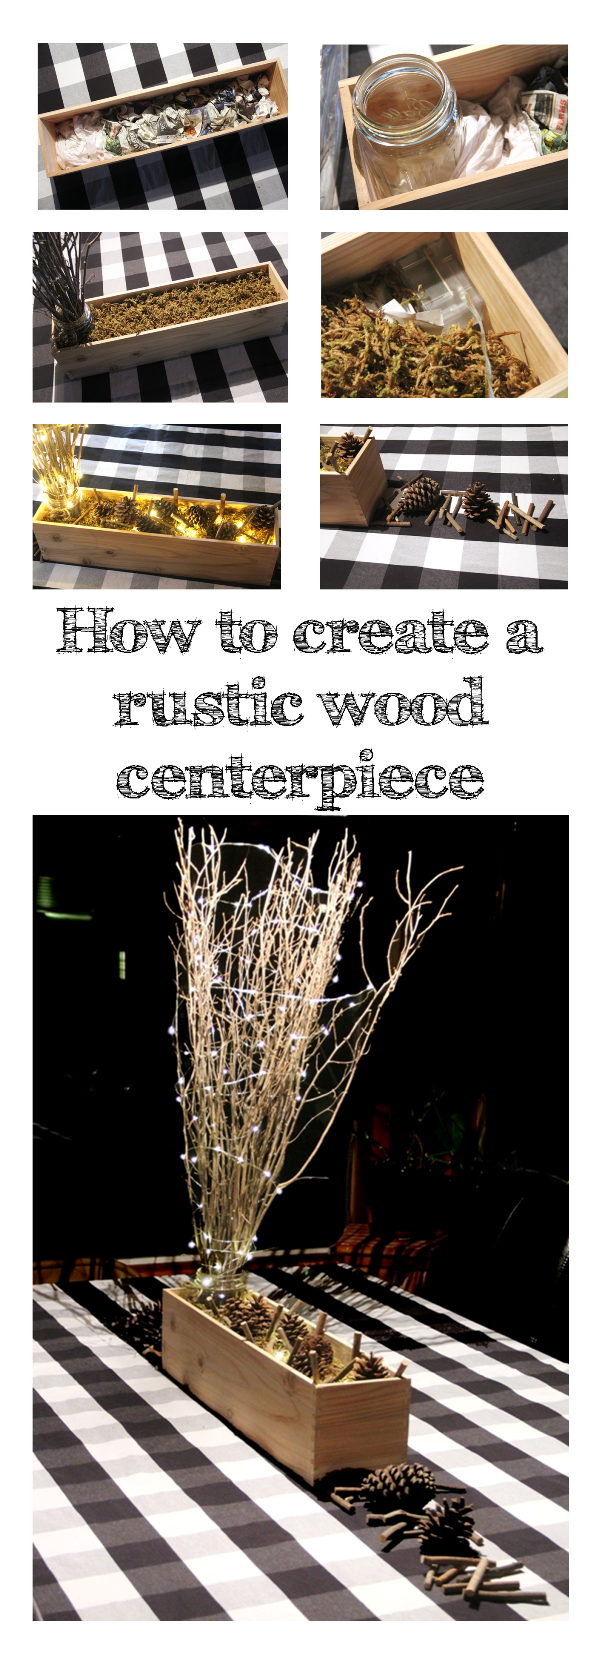 How to create a rustic wood centerpiece